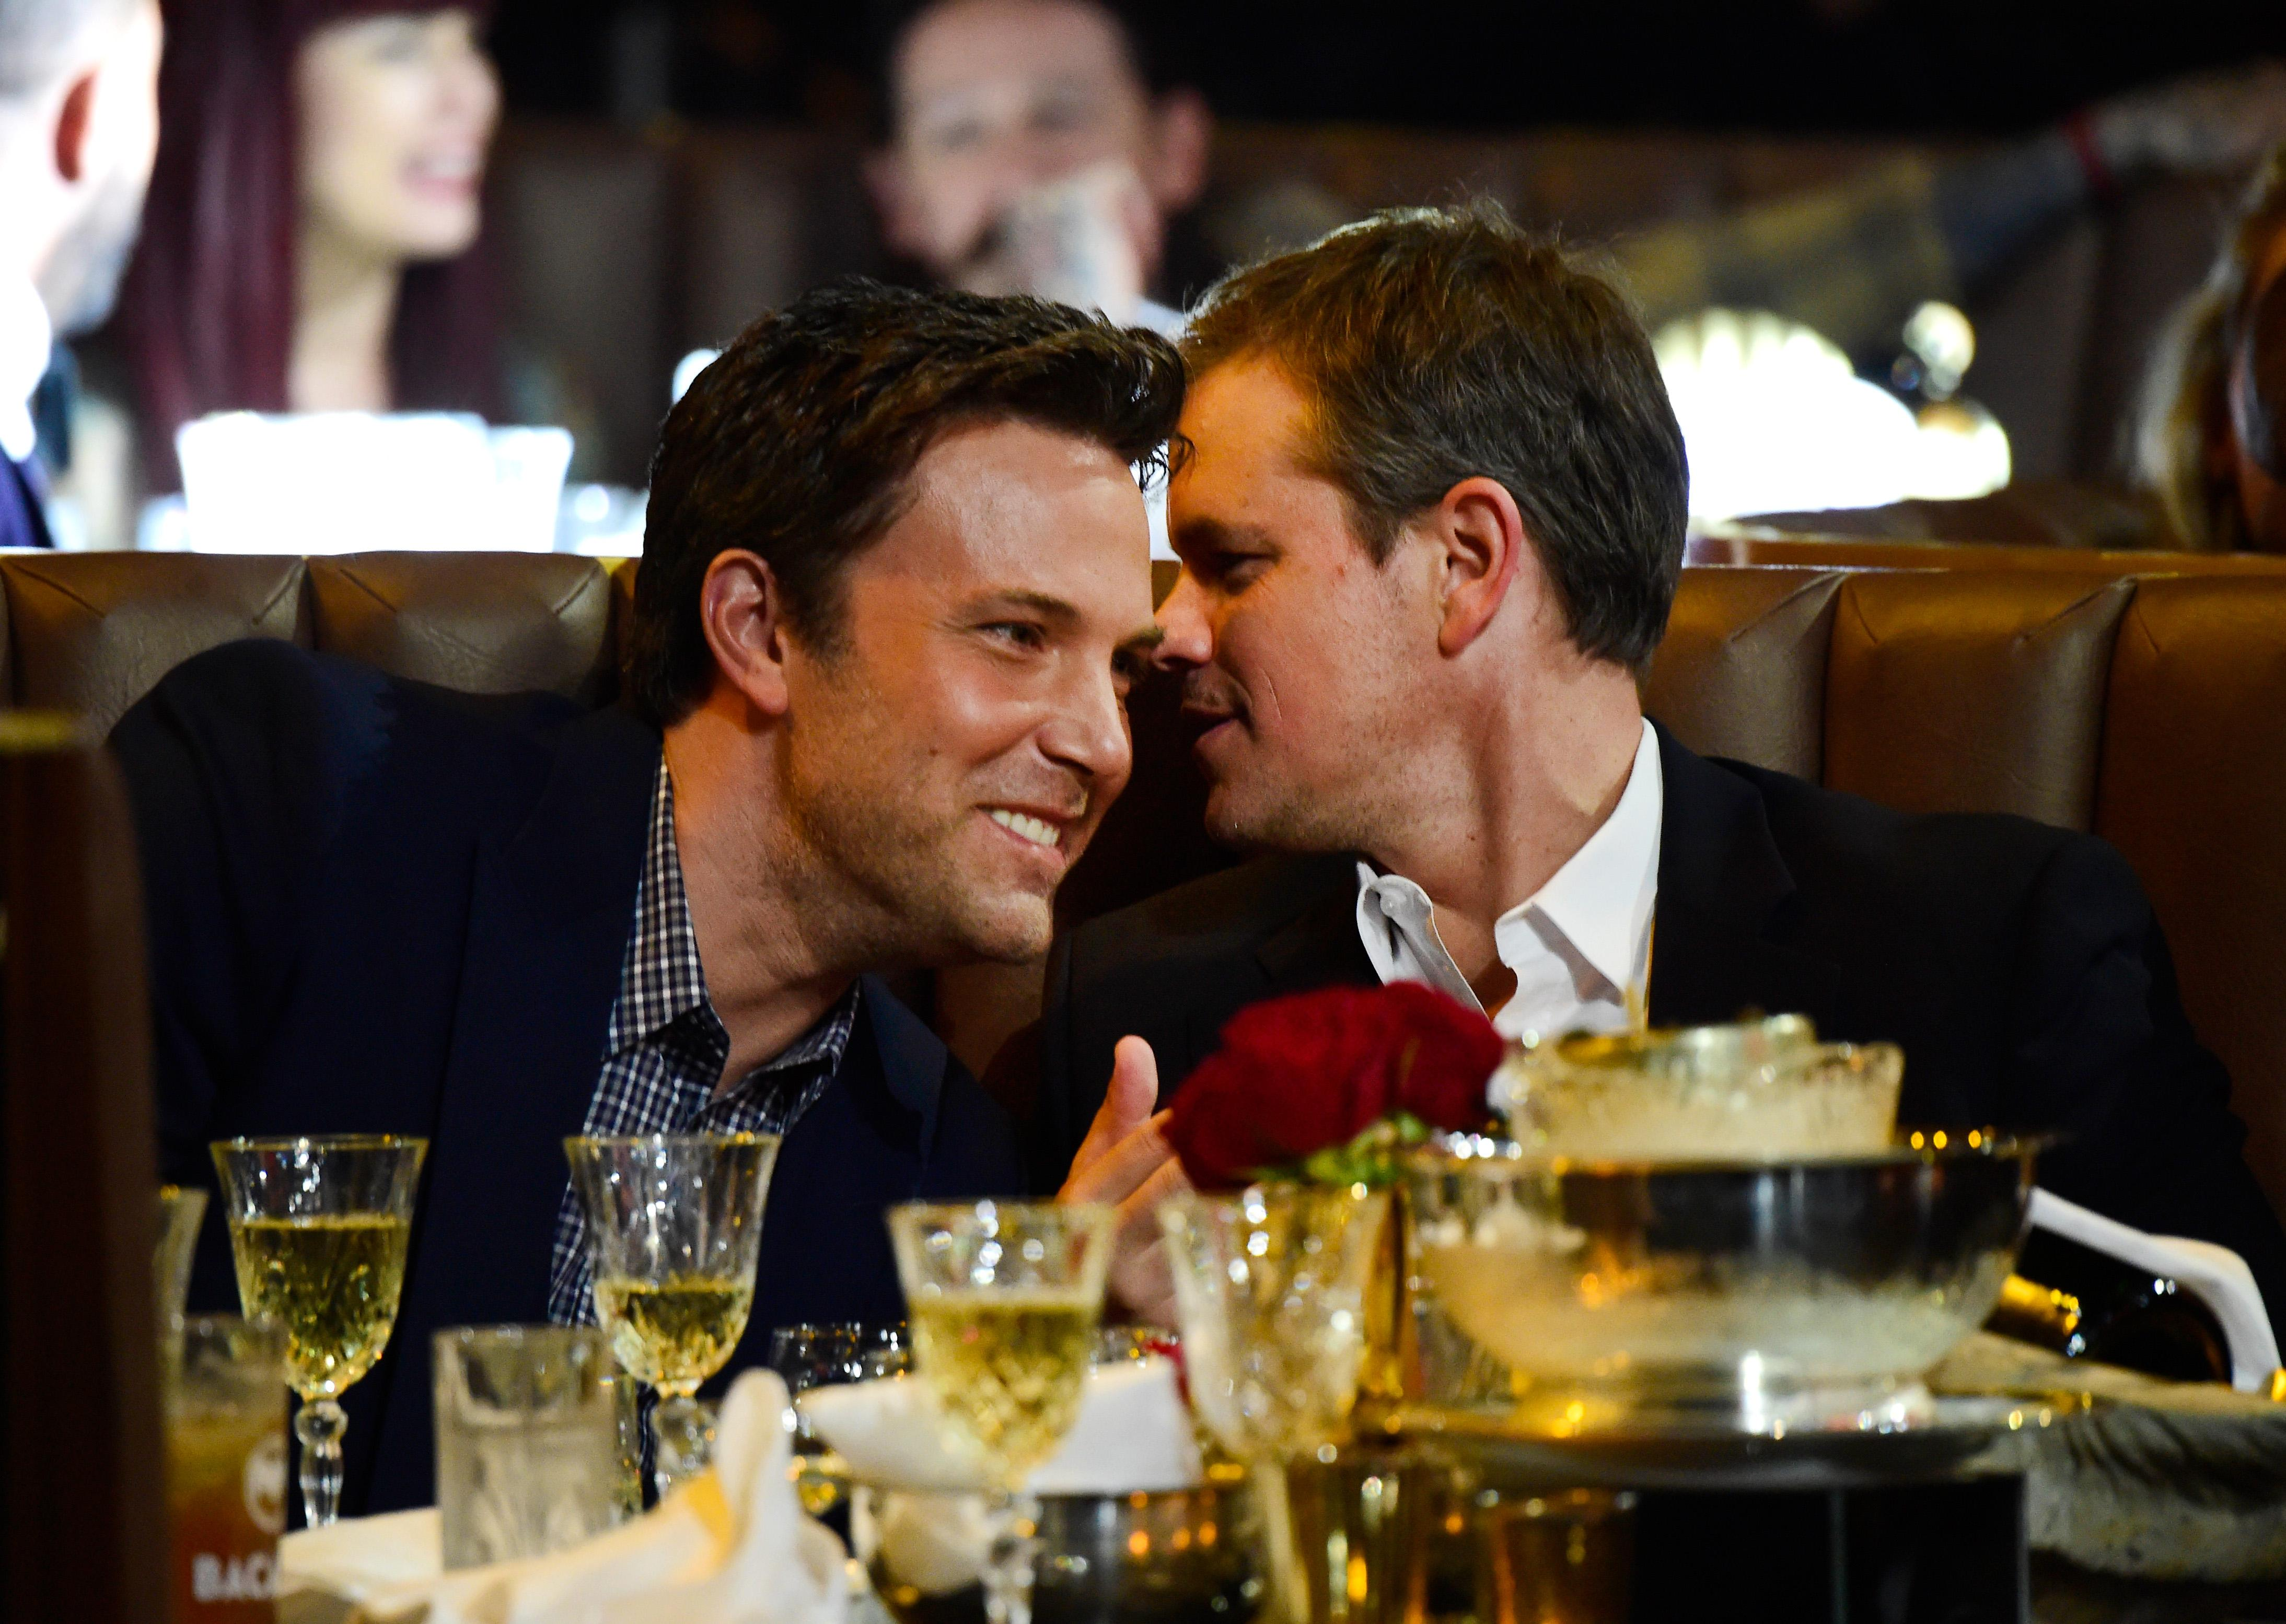 Matt and Ben's candid click as they share a conversation during an event